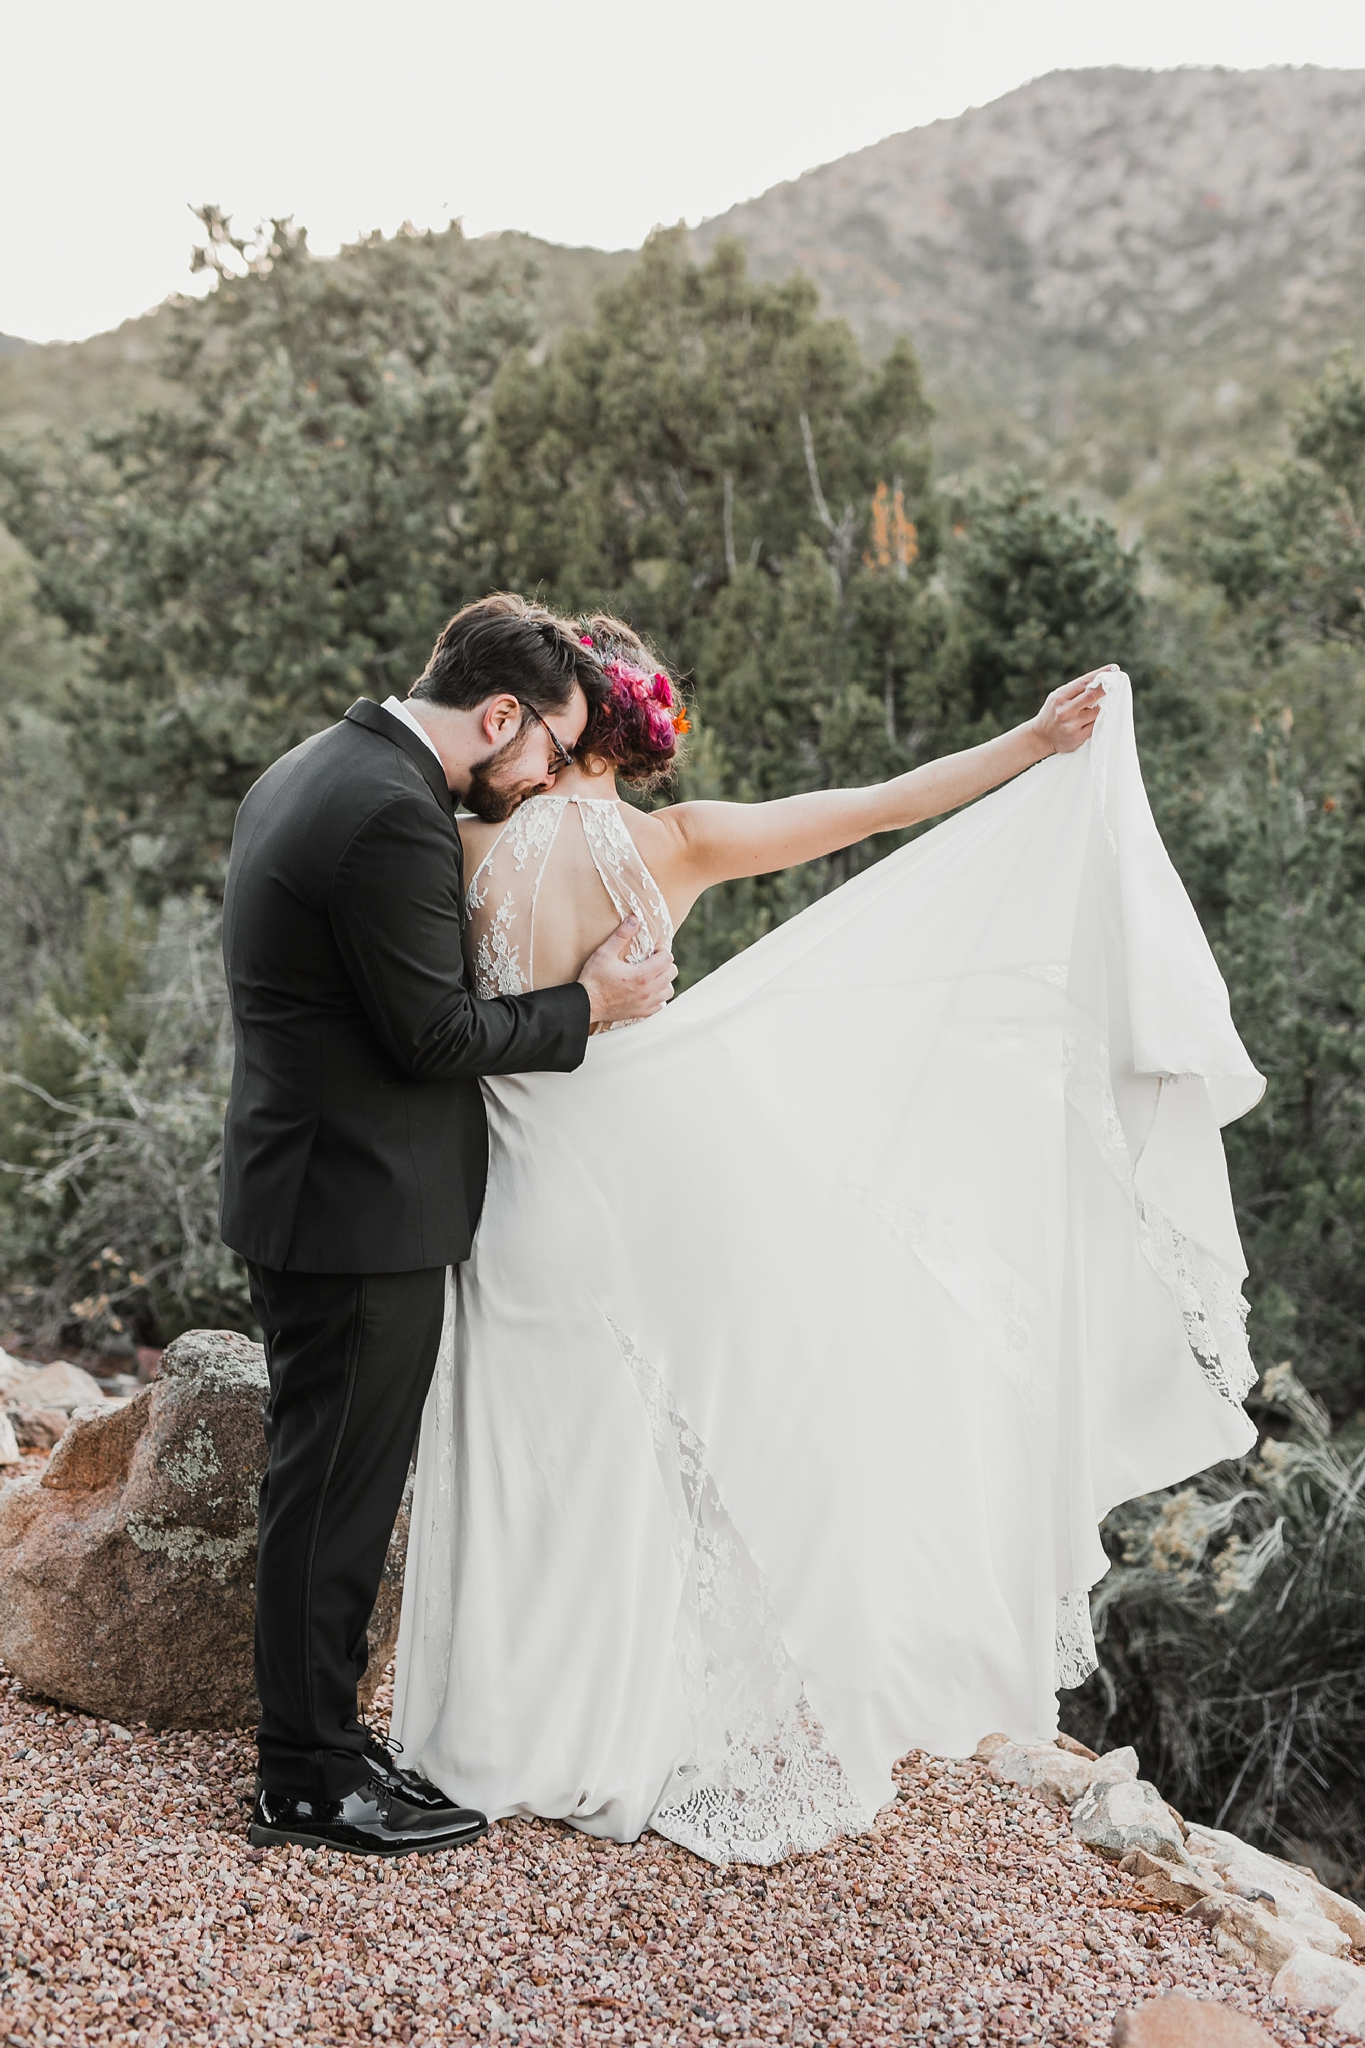 Alicia+lucia+photography+-+albuquerque+wedding+photographer+-+santa+fe+wedding+photography+-+new+mexico+wedding+photographer+-+new+mexico+wedding+-+wedding+gowns+-+bridal+gowns+-+a+line+wedding+gown_0019.jpg